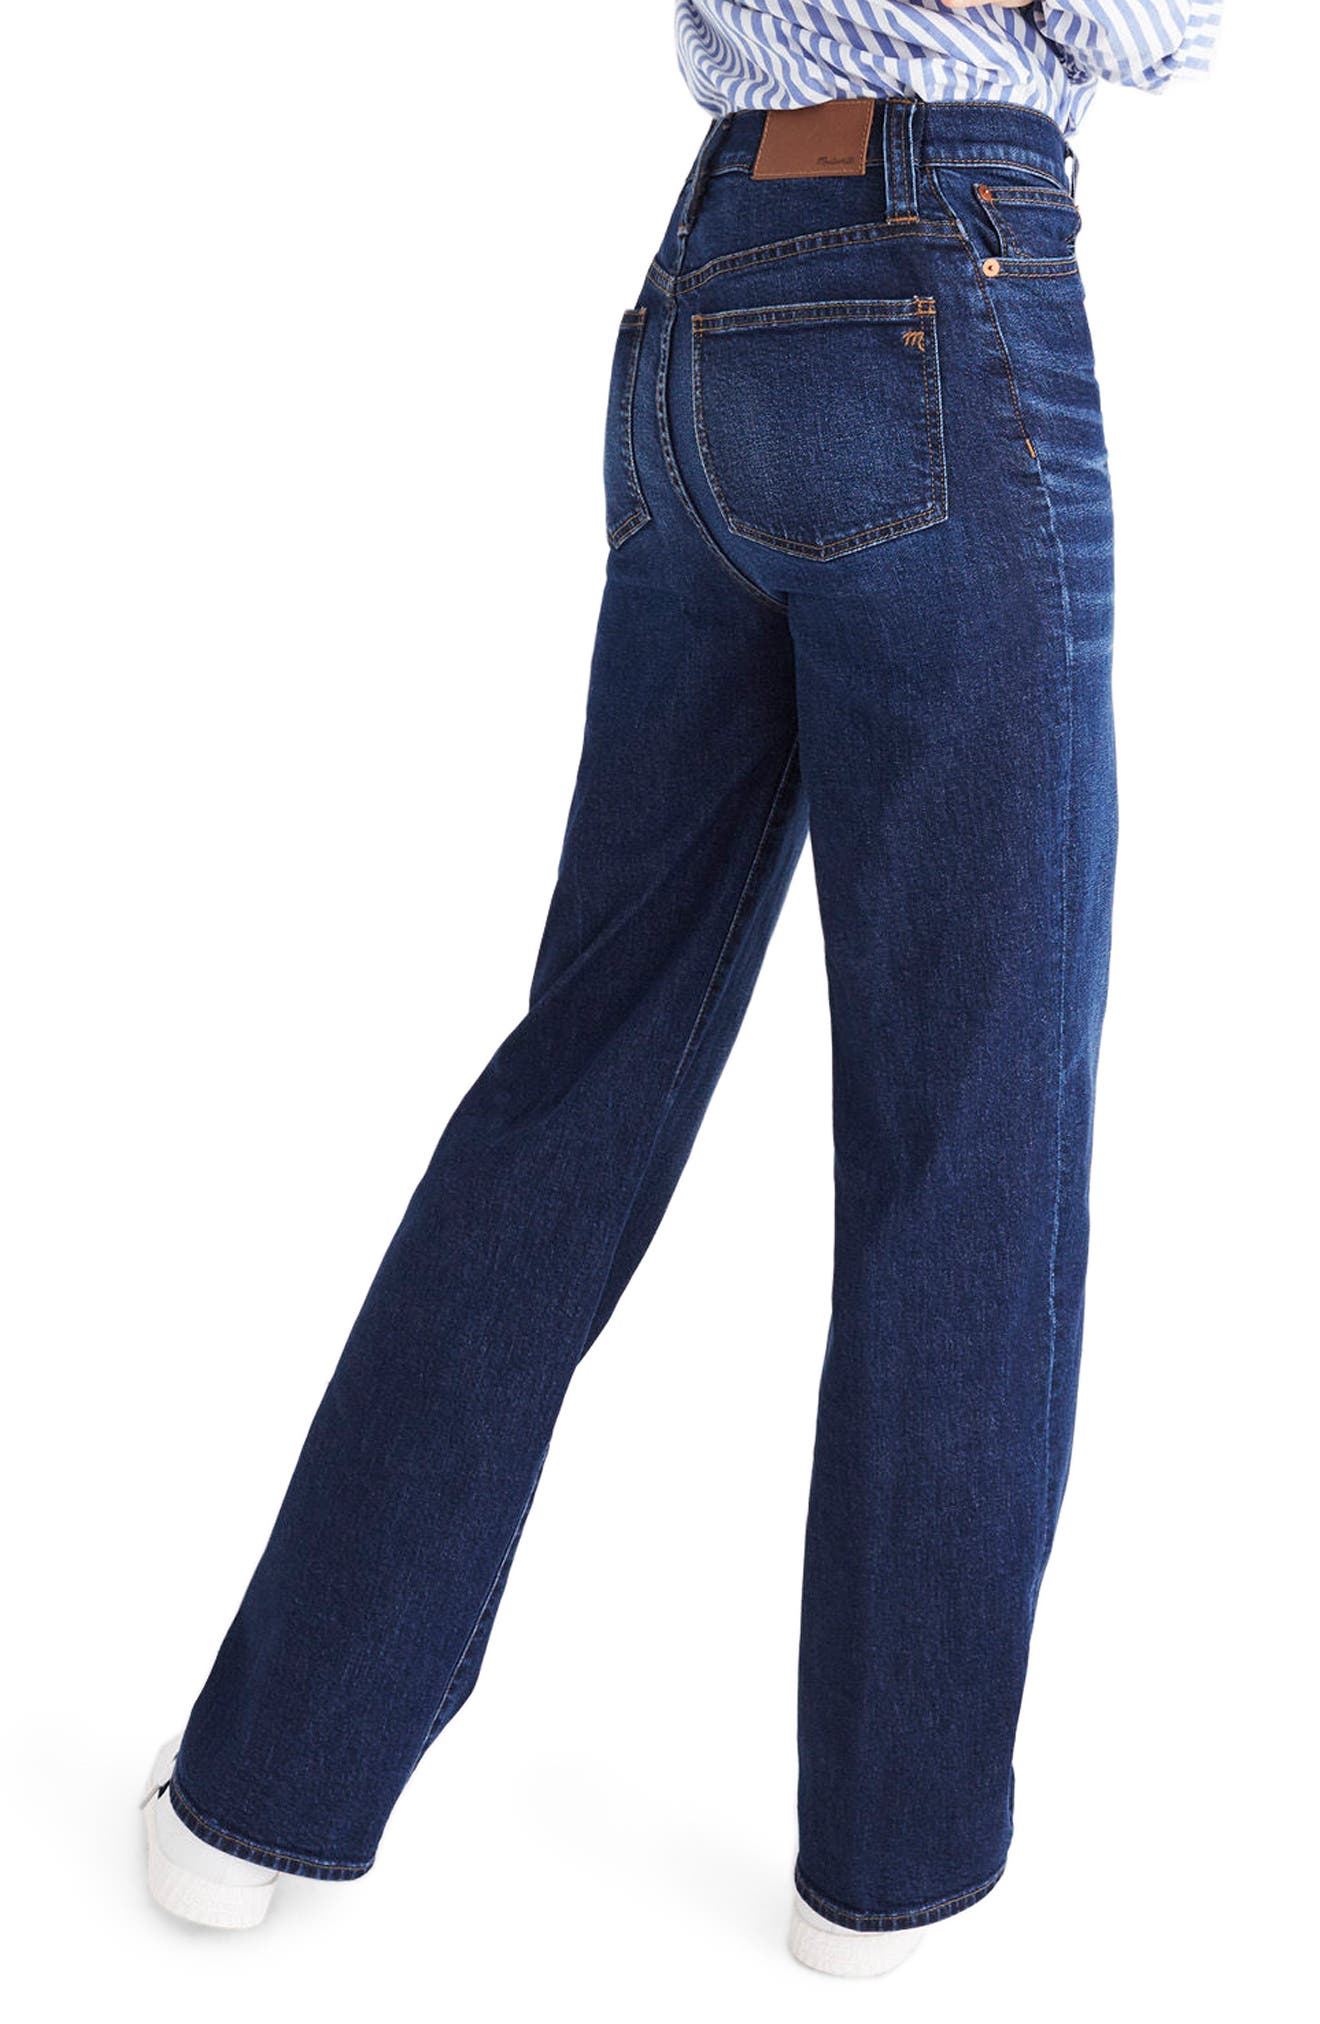 High Waist Wide Leg Jeans,                             Alternate thumbnail 2, color,                             Dorset Wash